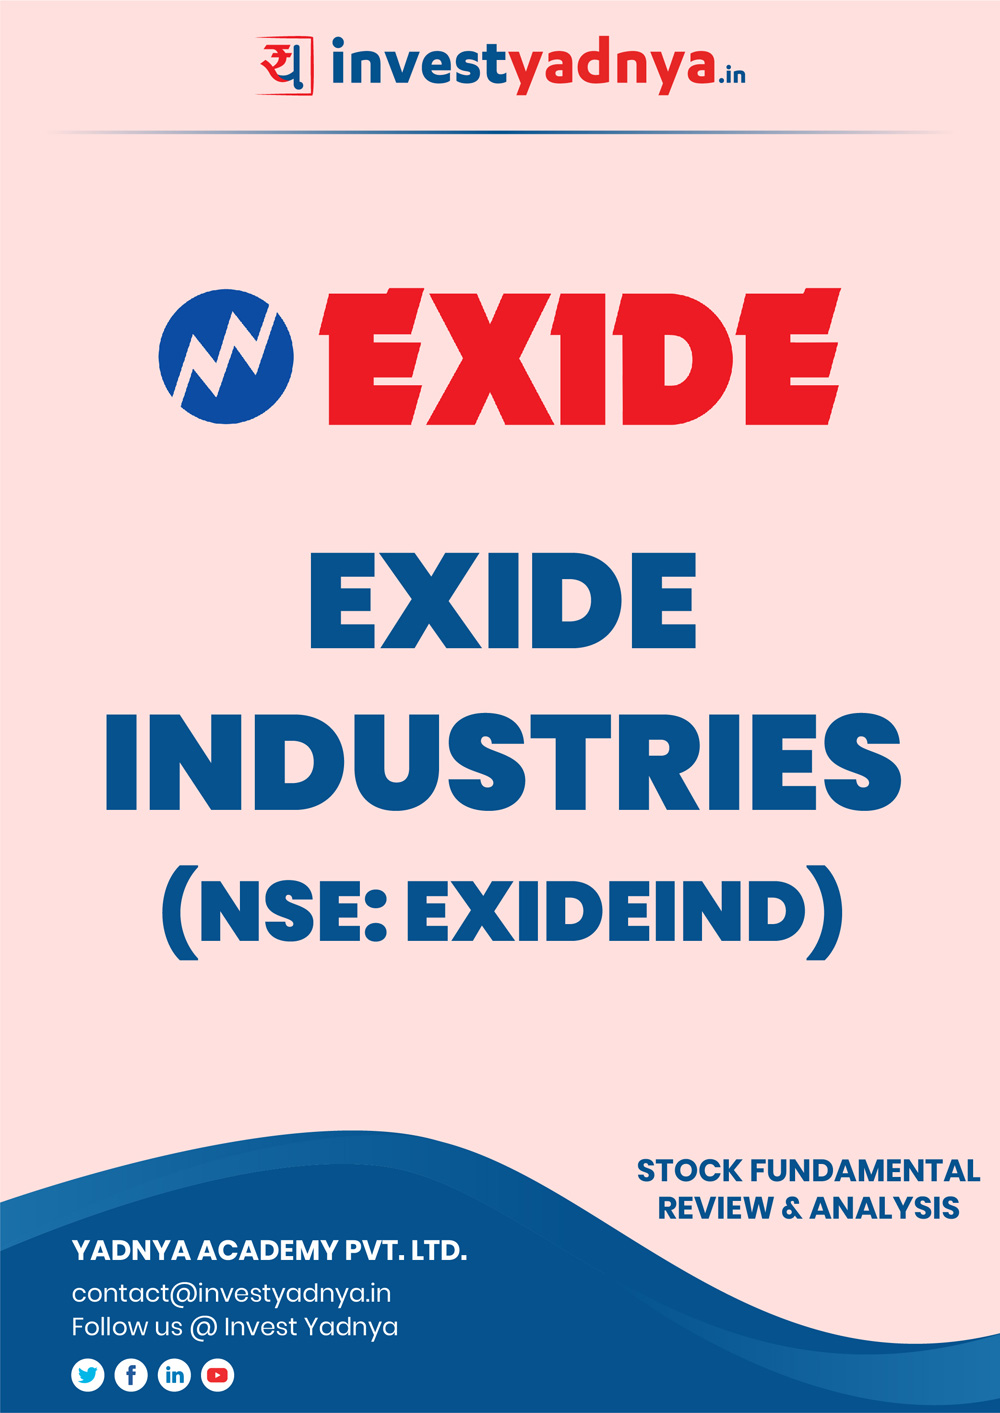 This e-book contains in-depth fundamental analysis of Exide Industries considering both Financial and Equity Research Parameters. It reviews the company, industry competitors, shareholding pattern, financials, and annual performance. ✔ Detailed Research ✔ Quality Reports